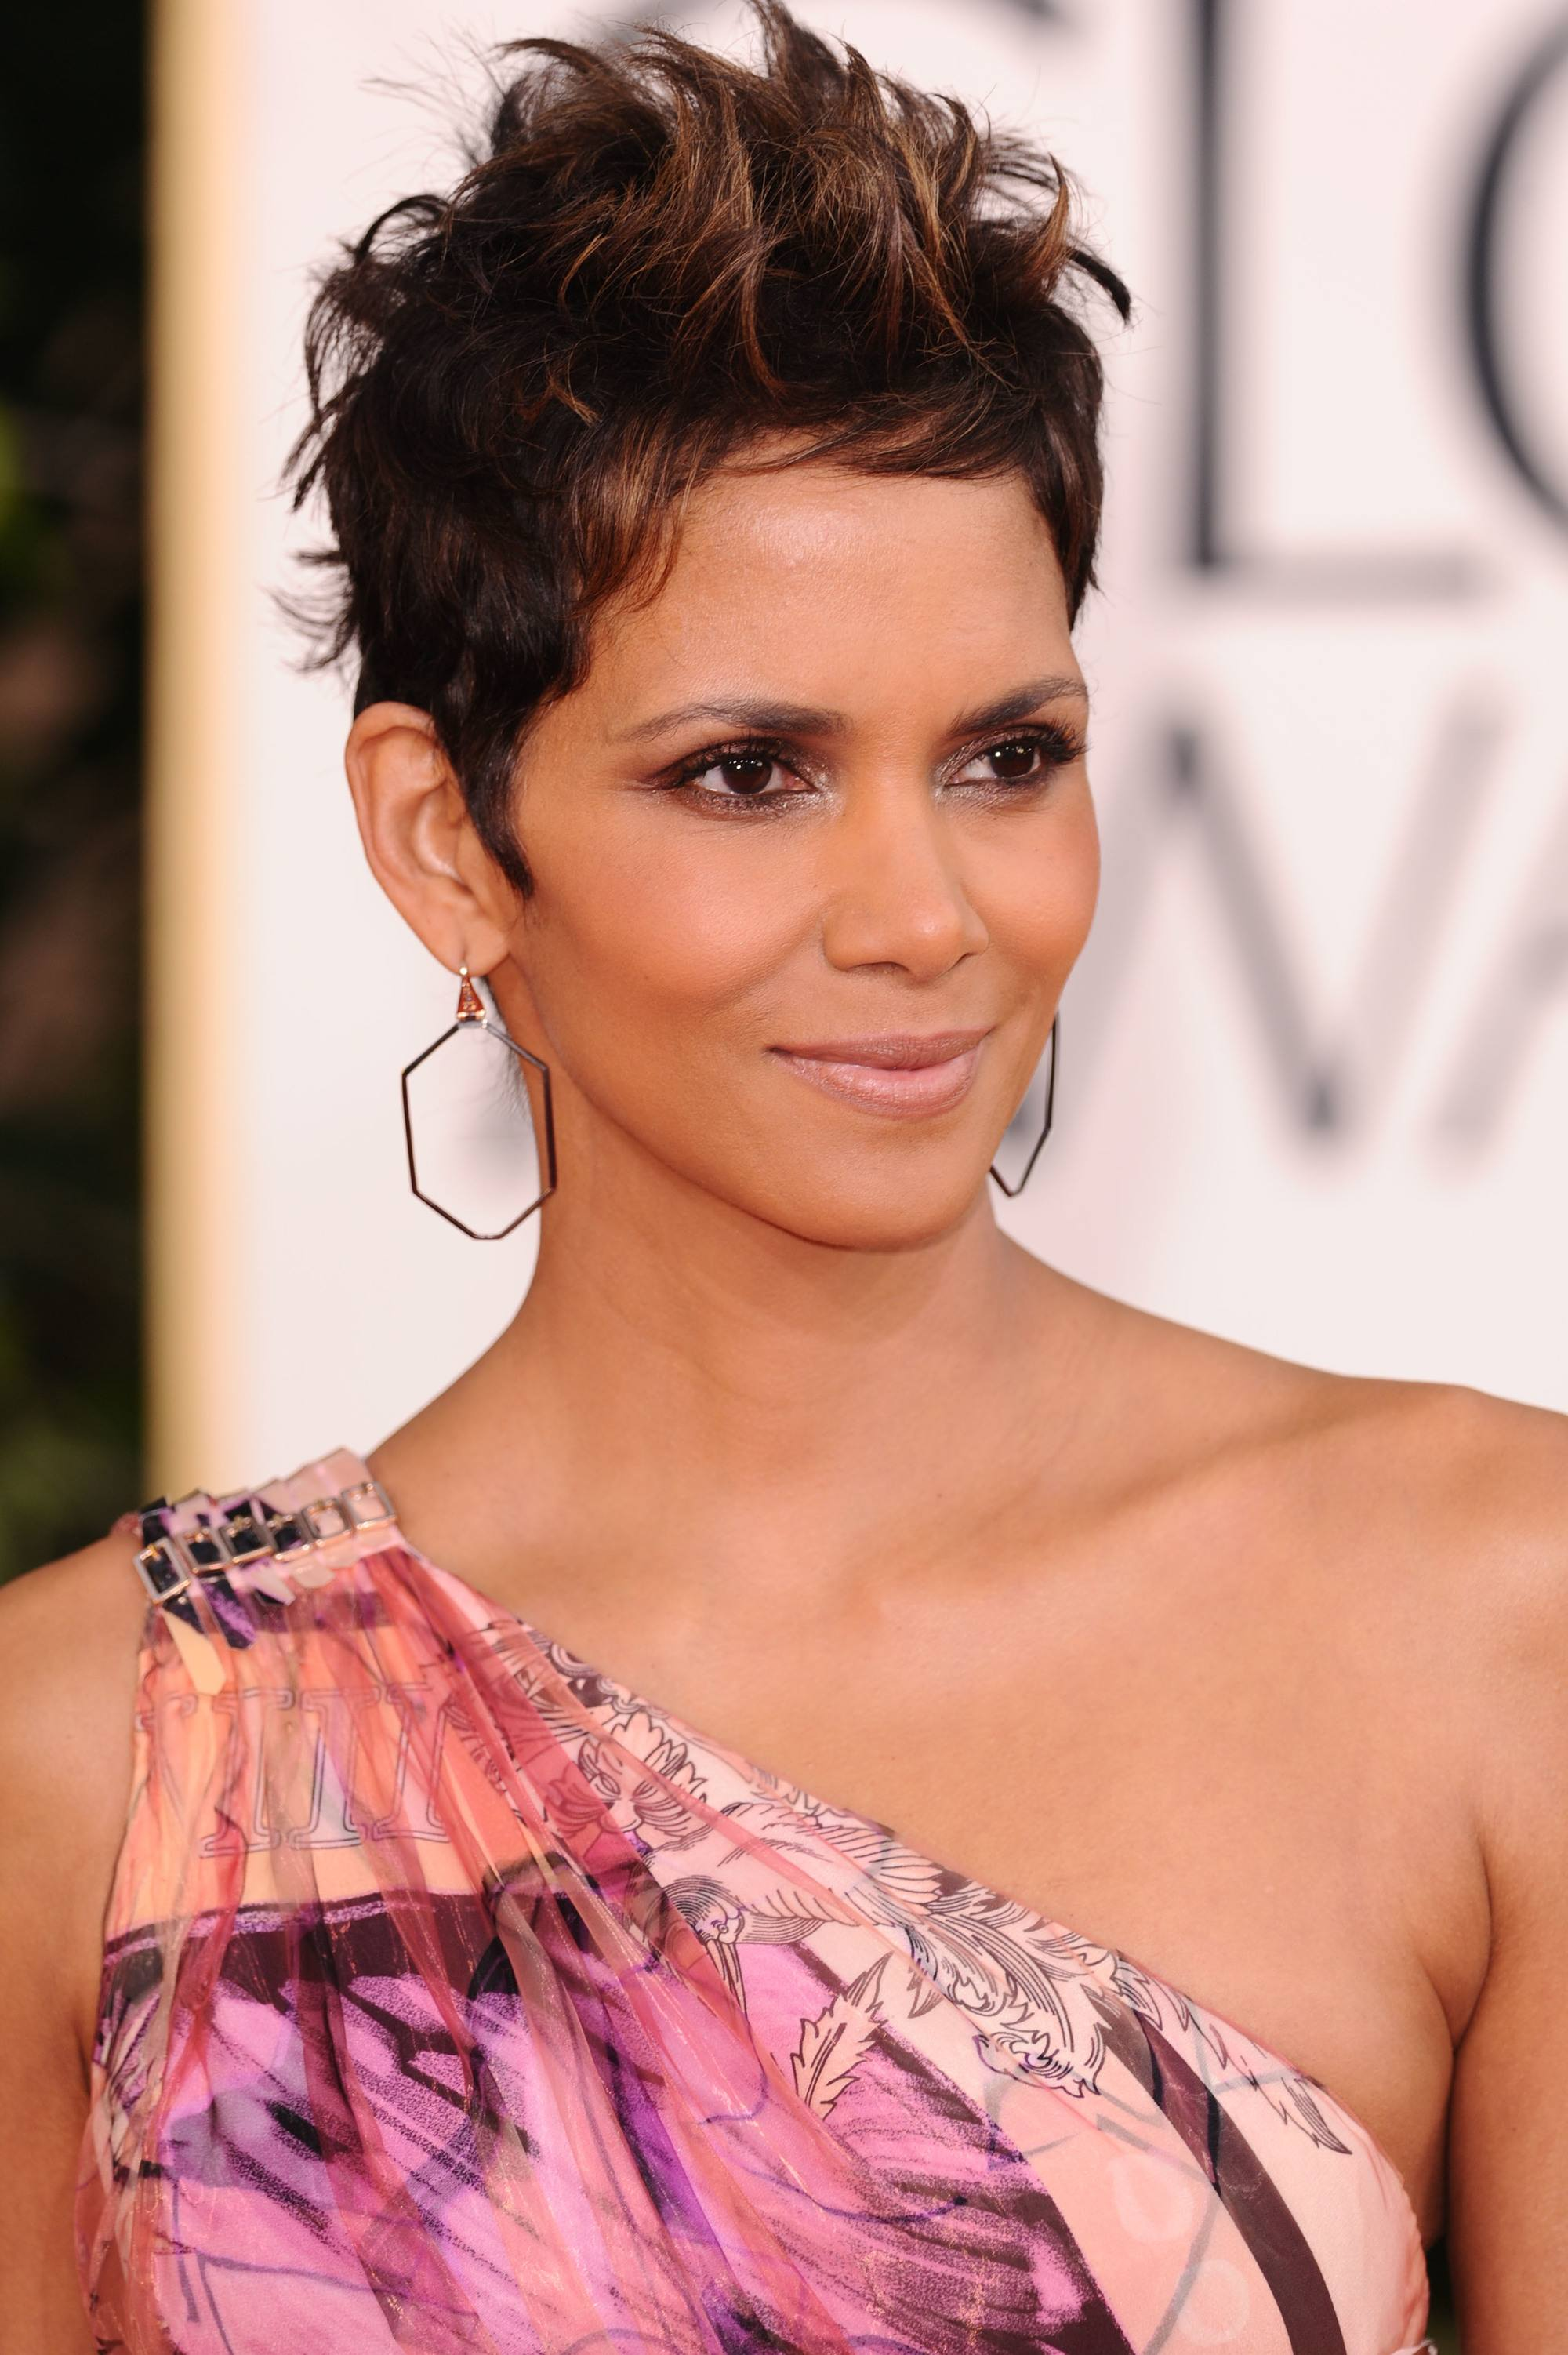 halle berry at the golden globe awards in a floral one shoulder dress with a spiked up short mohawk hairstyle